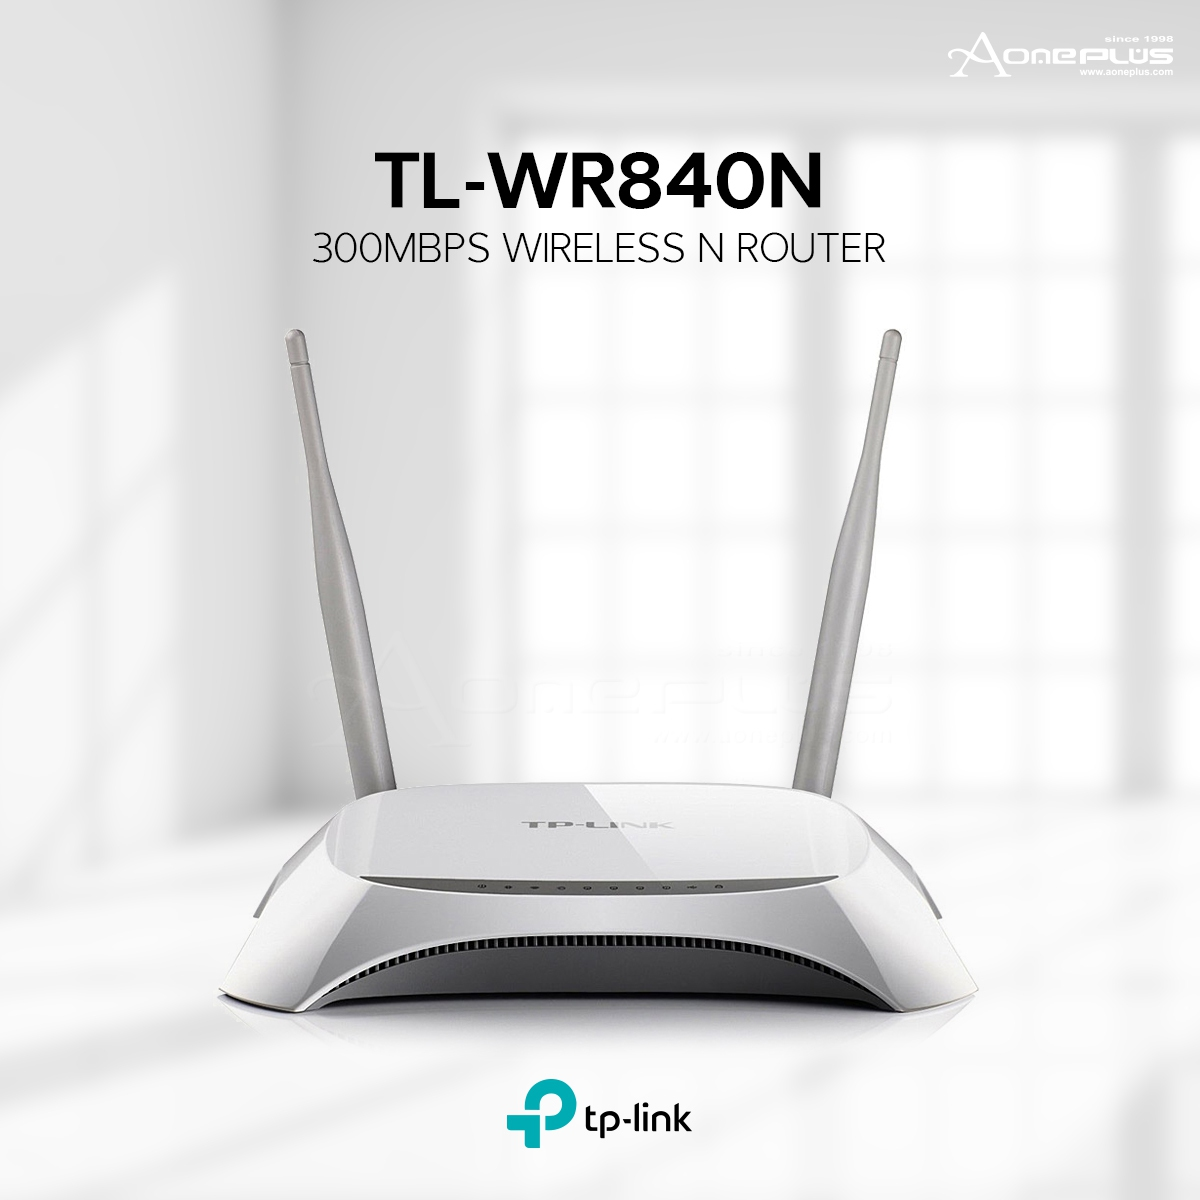 tp-link-tl-wr840n-300mbps-wireless-n-router-itdigitalmall-1802-23-F452987_1